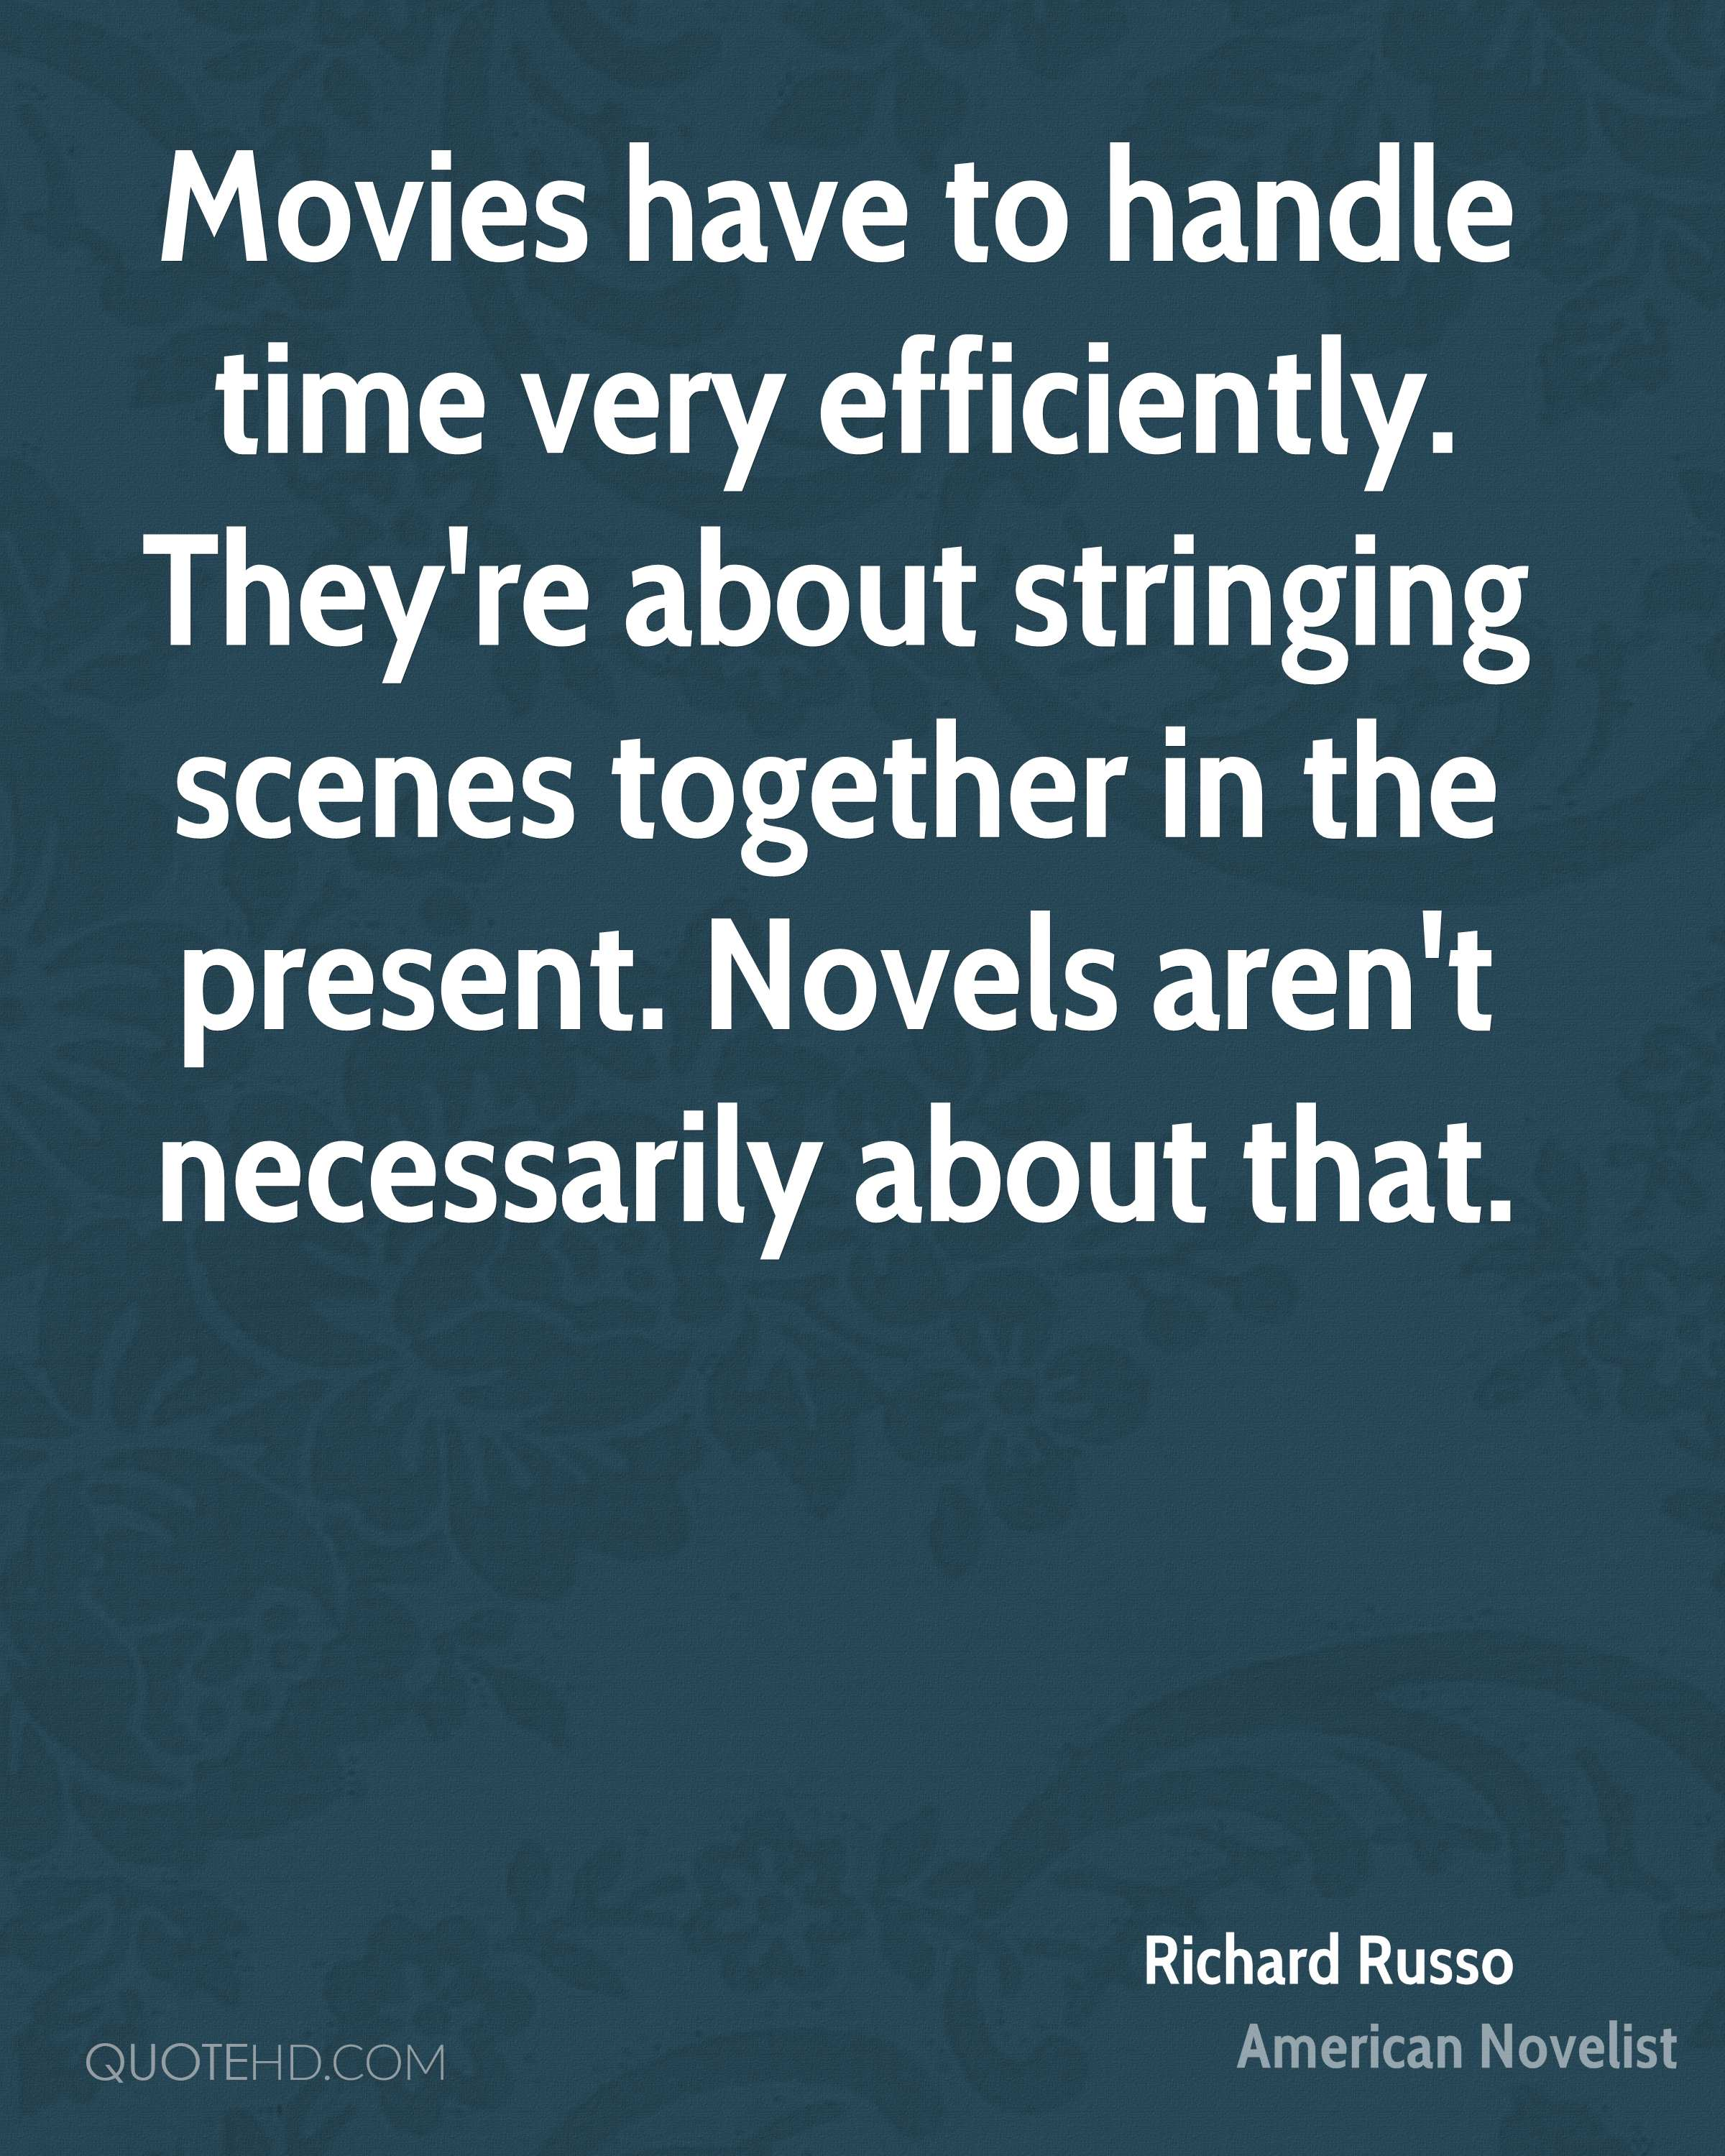 Movies have to handle time very efficiently. They're about stringing scenes together in the present. Novels aren't necessarily about that.